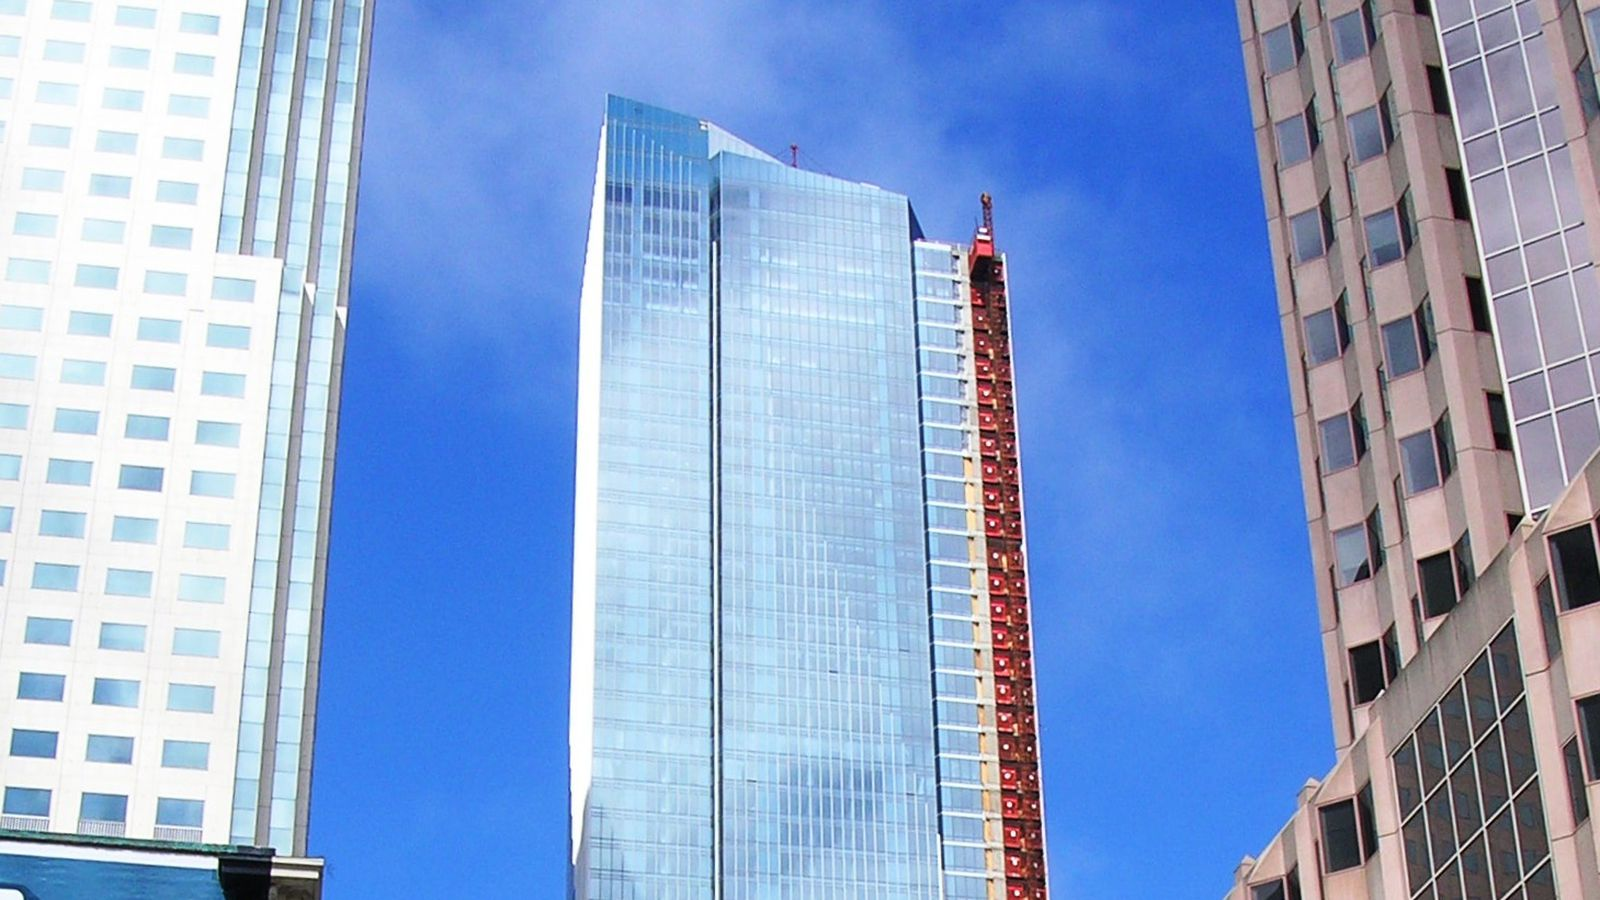 Millennium Tower Is Built On Landfill Prone To Liquefying